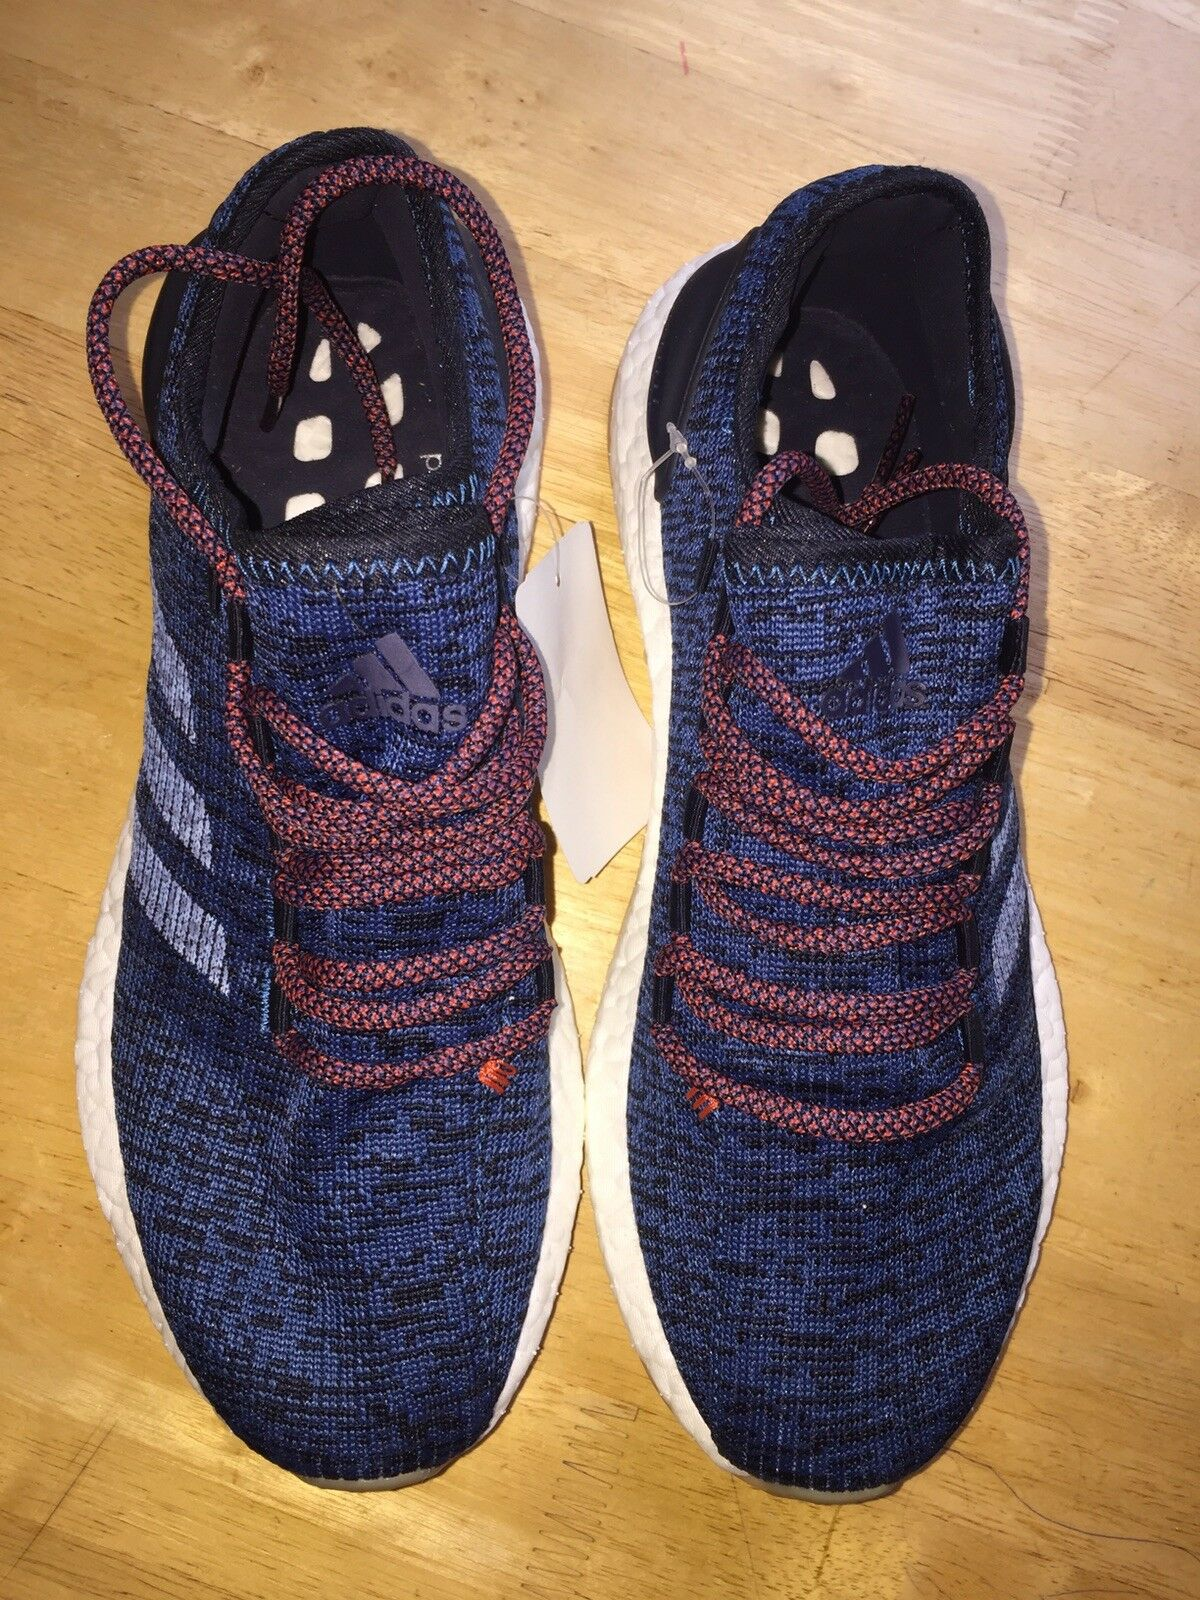 Adidas men's trainers trainers trainers enegy boost trainers color bluee orange size uk 8.5. 75afec